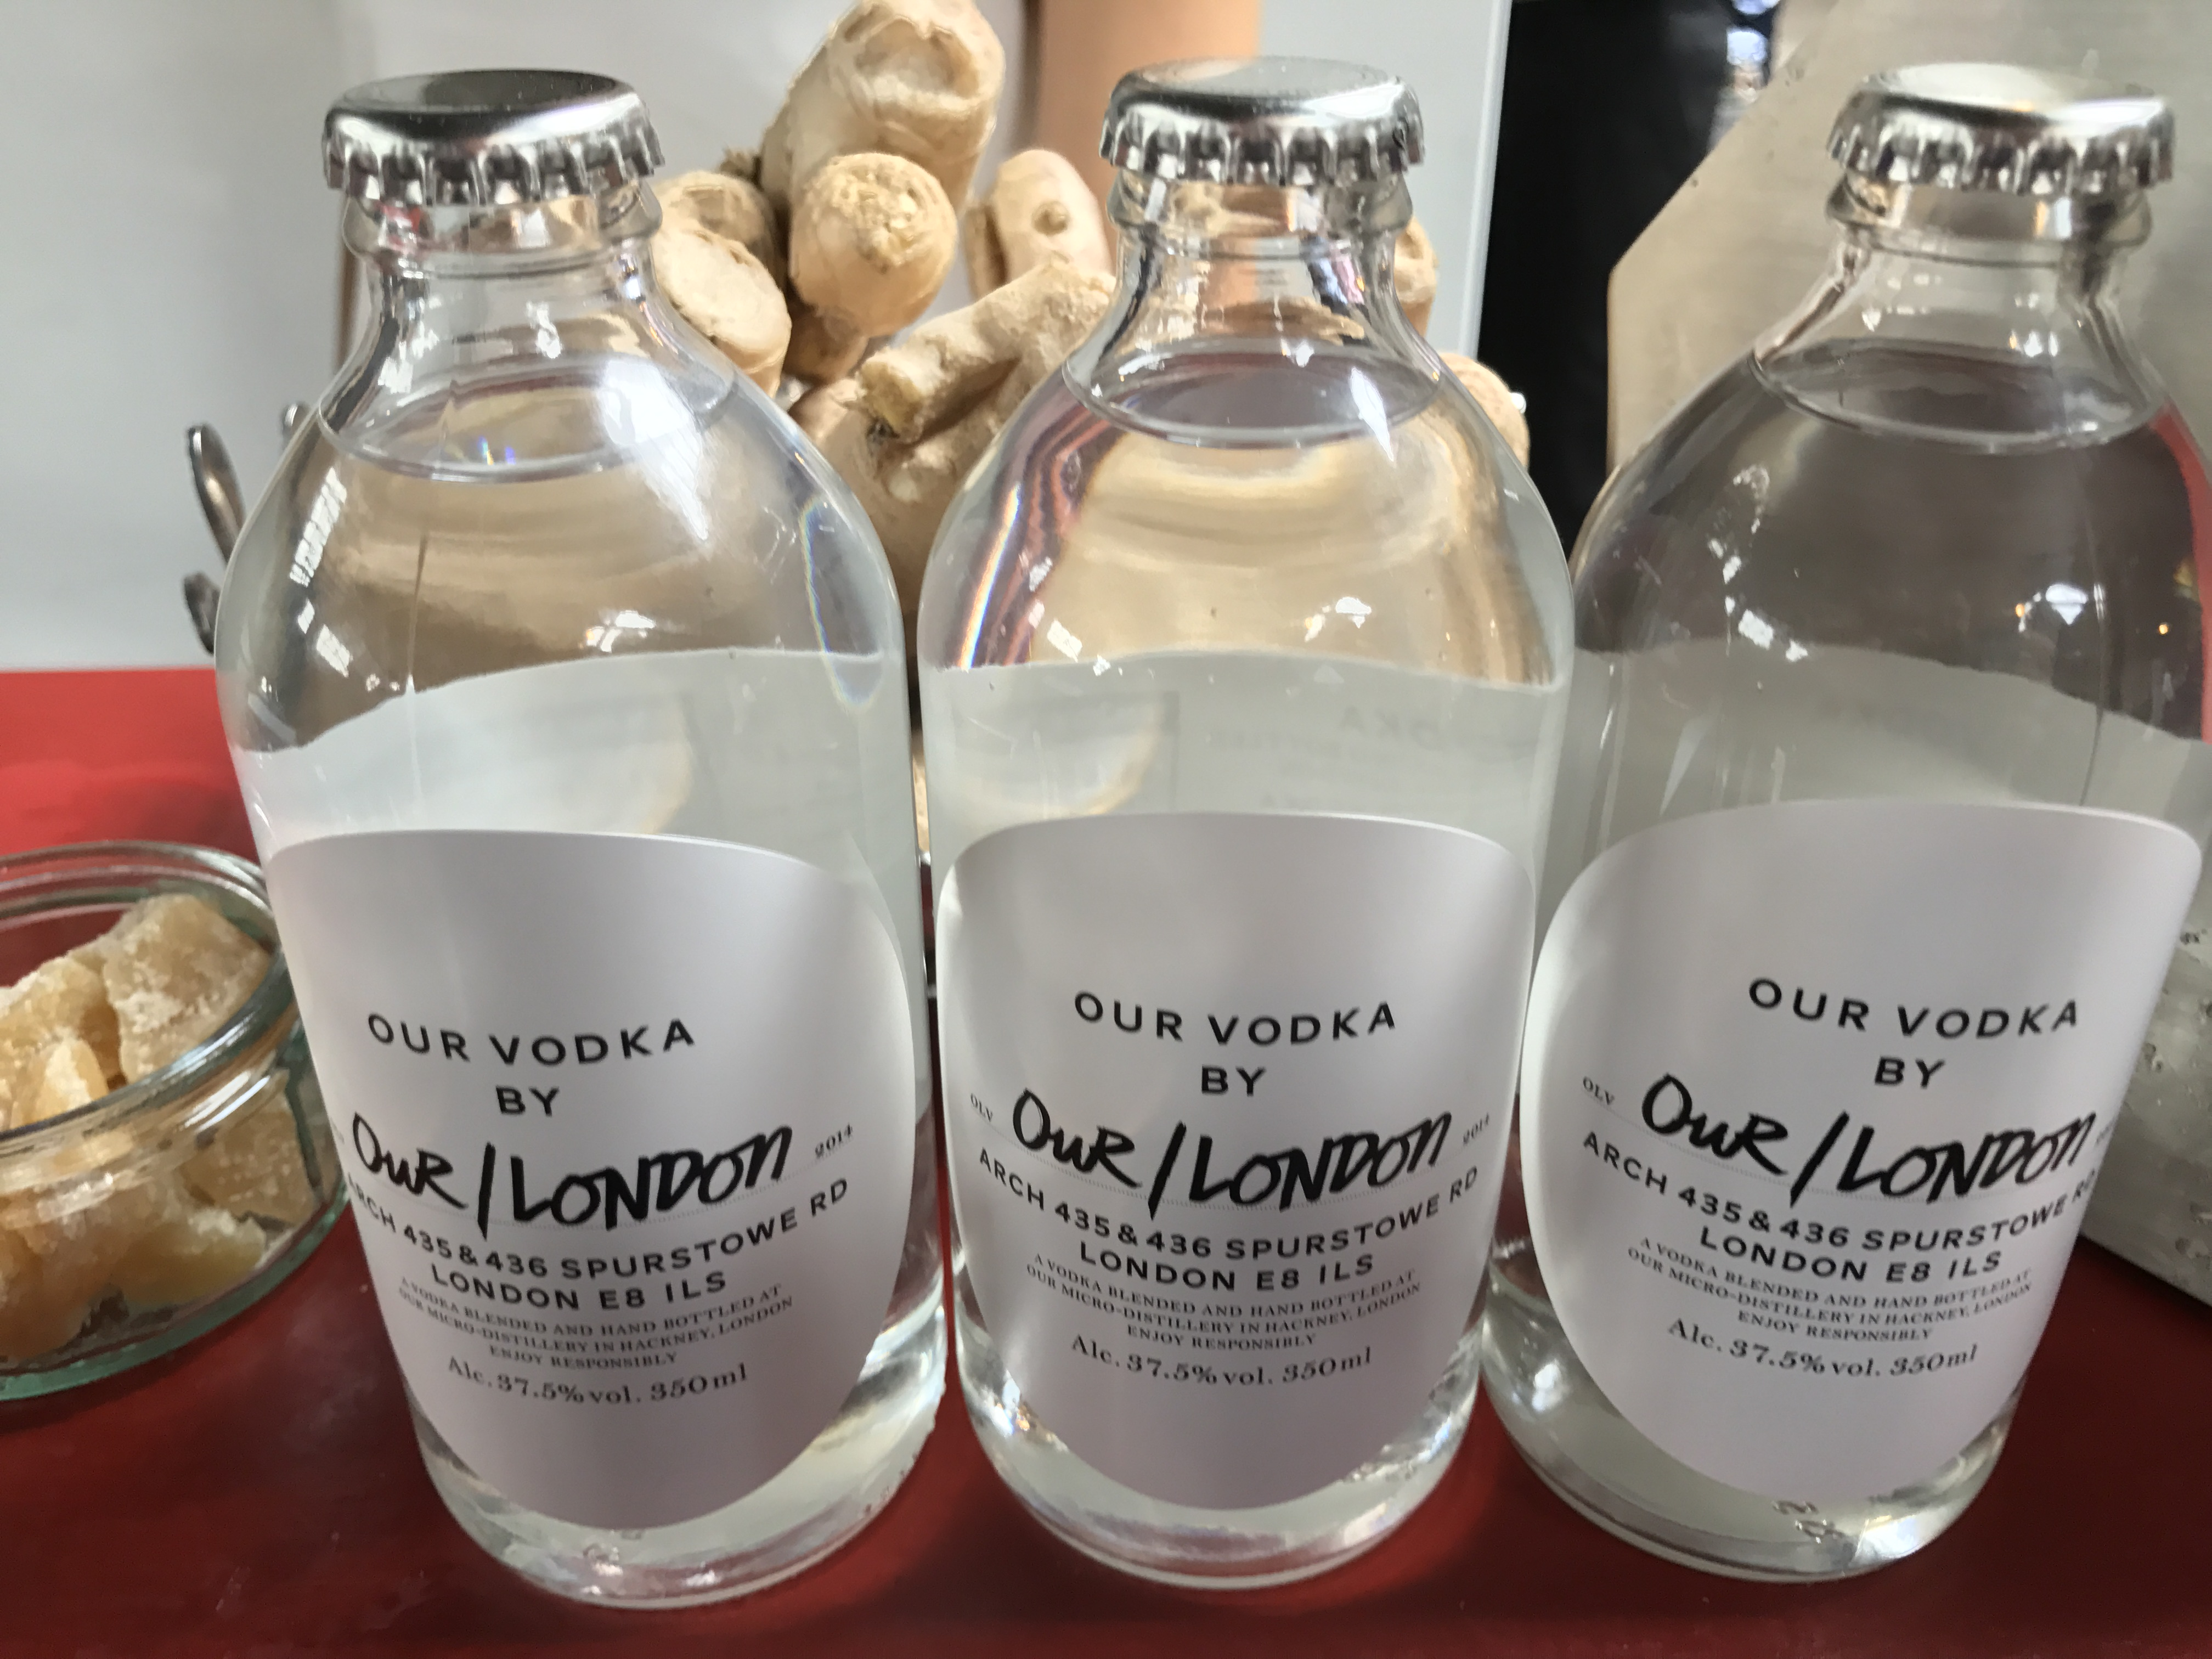 Our Vodka: local entrepreneurs and Pernod's Absolut vodka working together